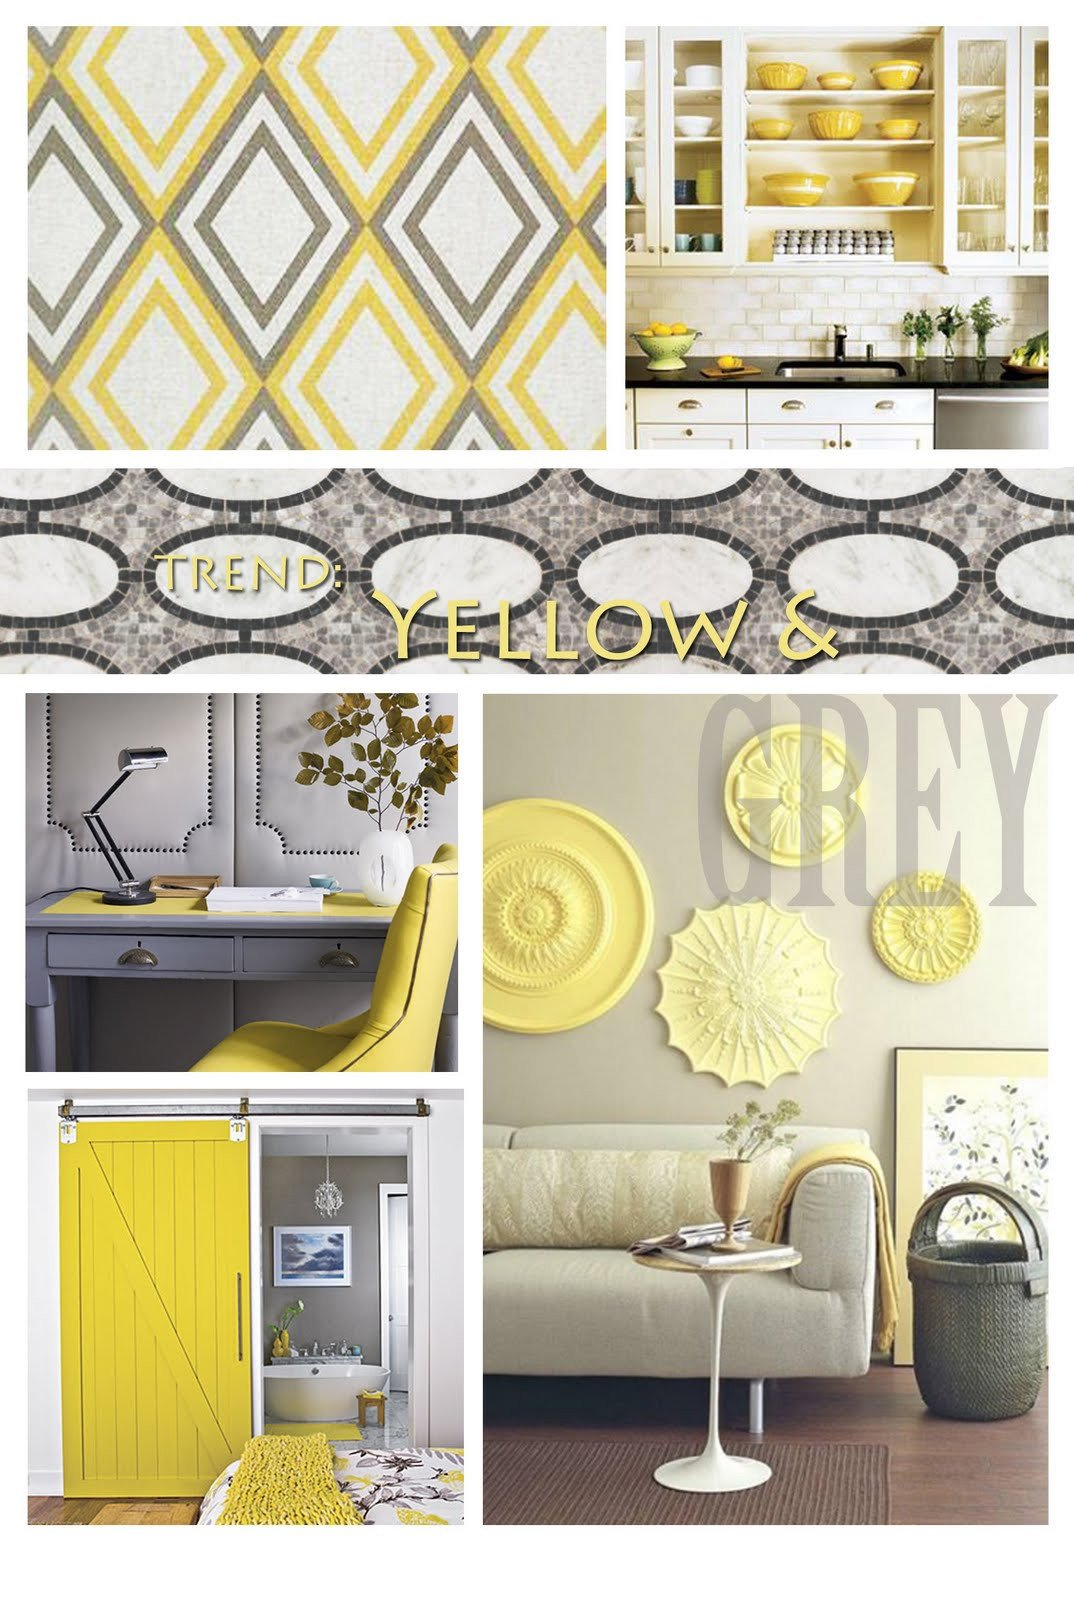 Grey and Yellow Decor Ideas Inspirational sincerely Your Designs Decorating with Yellow and Grey